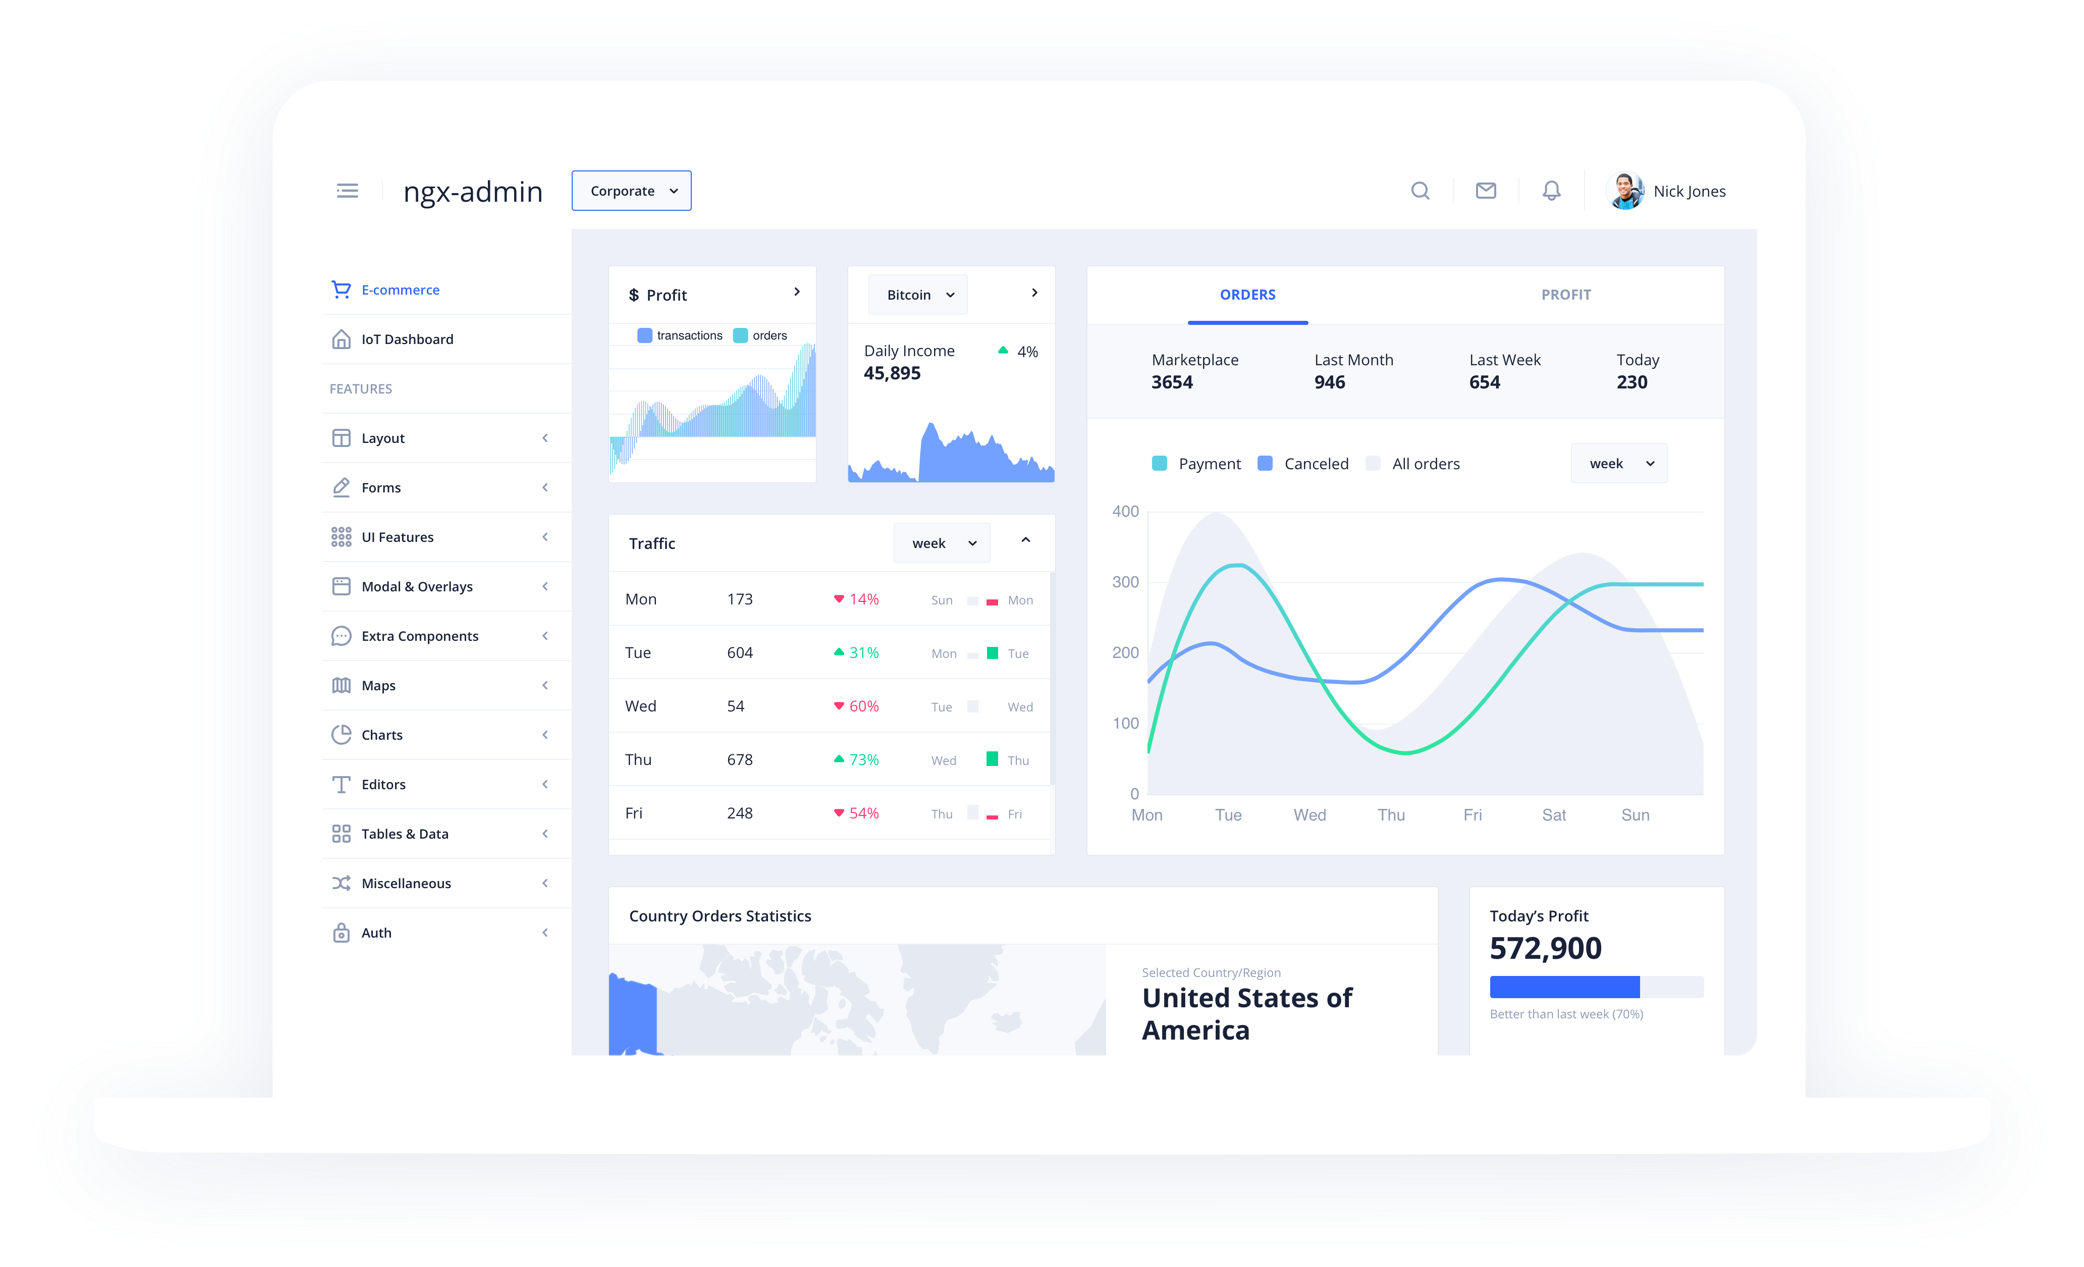 ngx-admin: Free Open Source admin dashboard template based